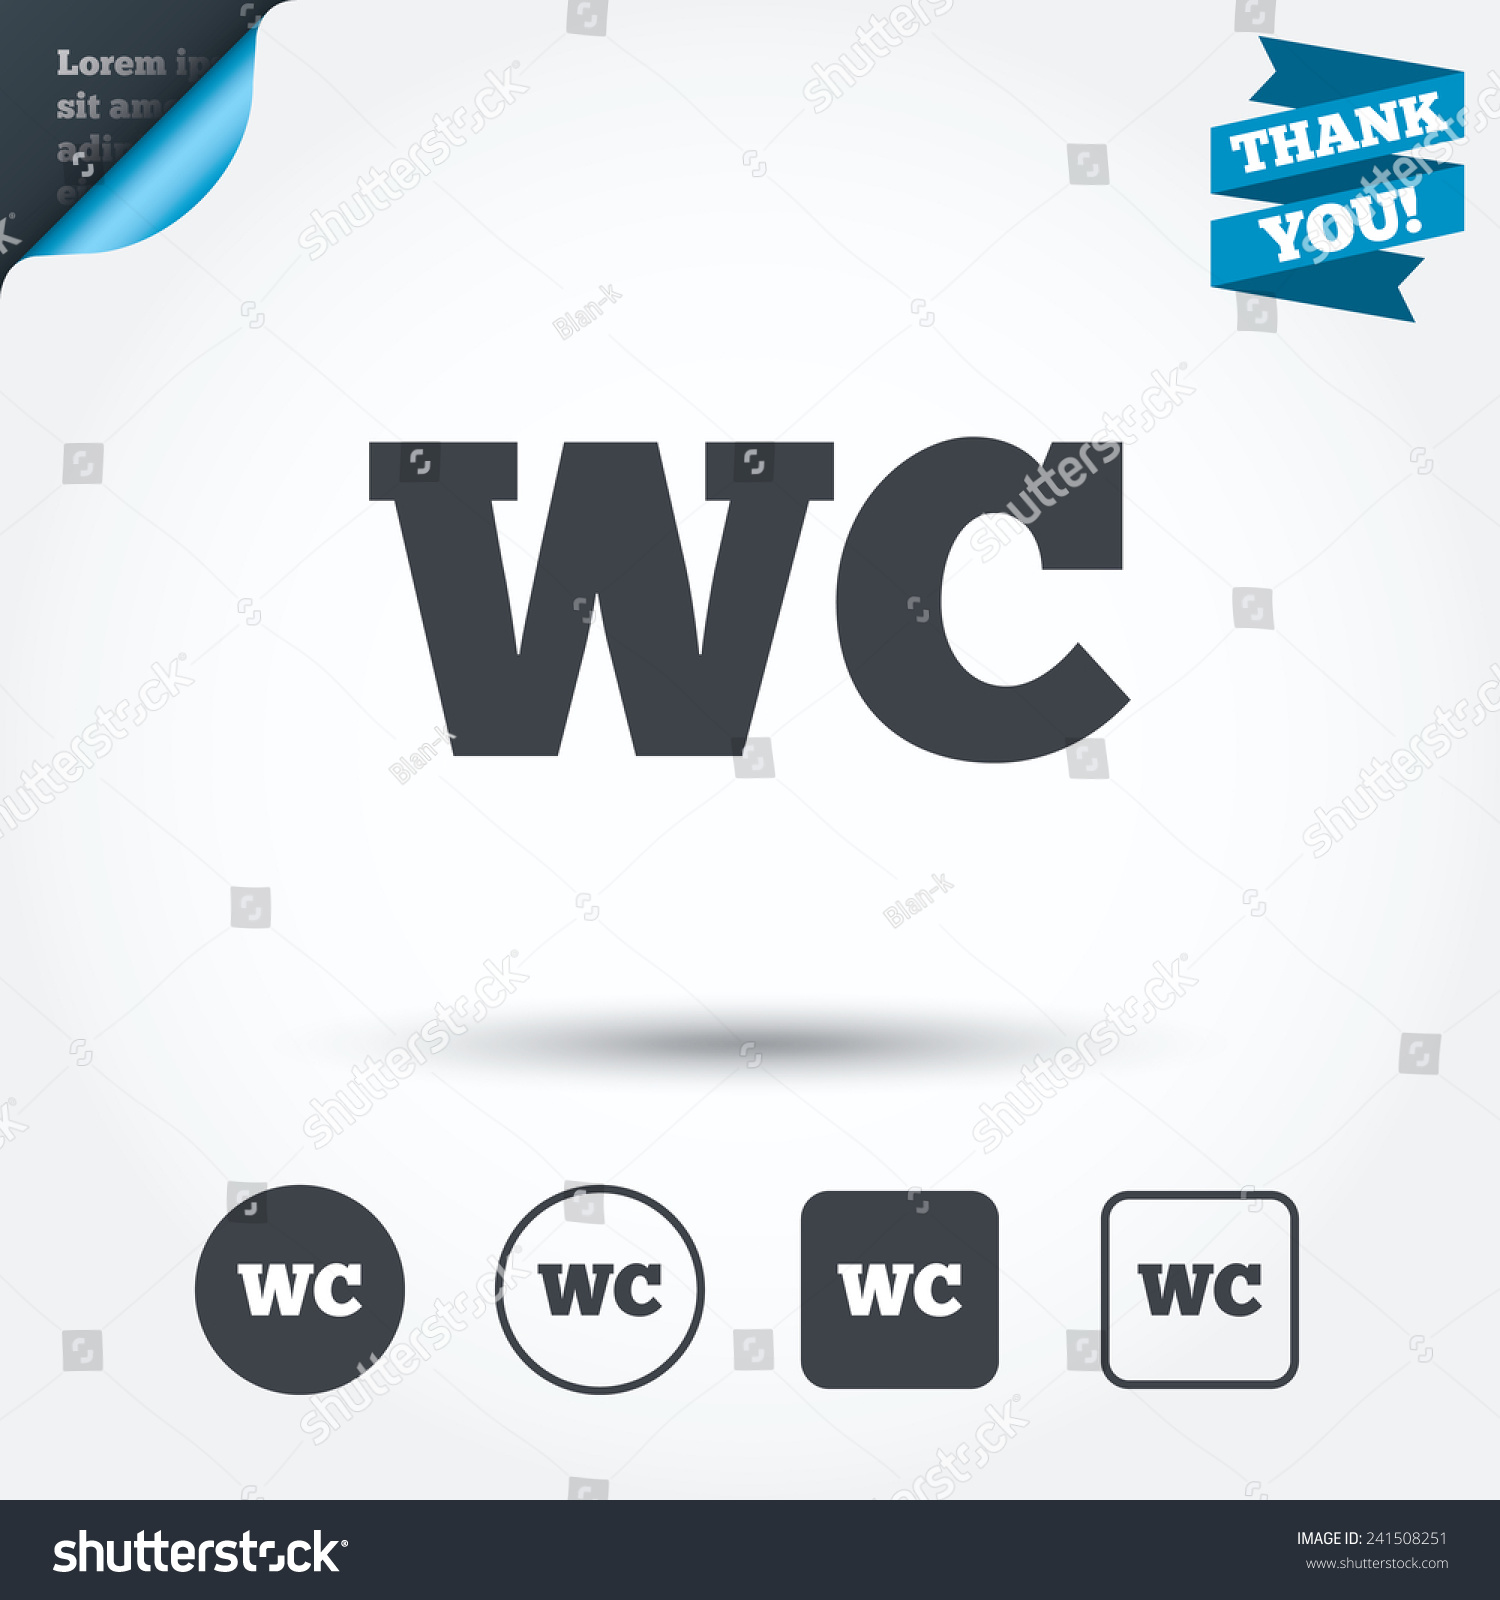 Toilet signs vector set stock images image 36323784 - Wc Toilet Sign Icon Restroom Lavatory Stock Vector 241508251 Stock Vector Wc Toilet Sign Icon Restroom Or Lavatory Symbol Circle And Square Buttons Flat